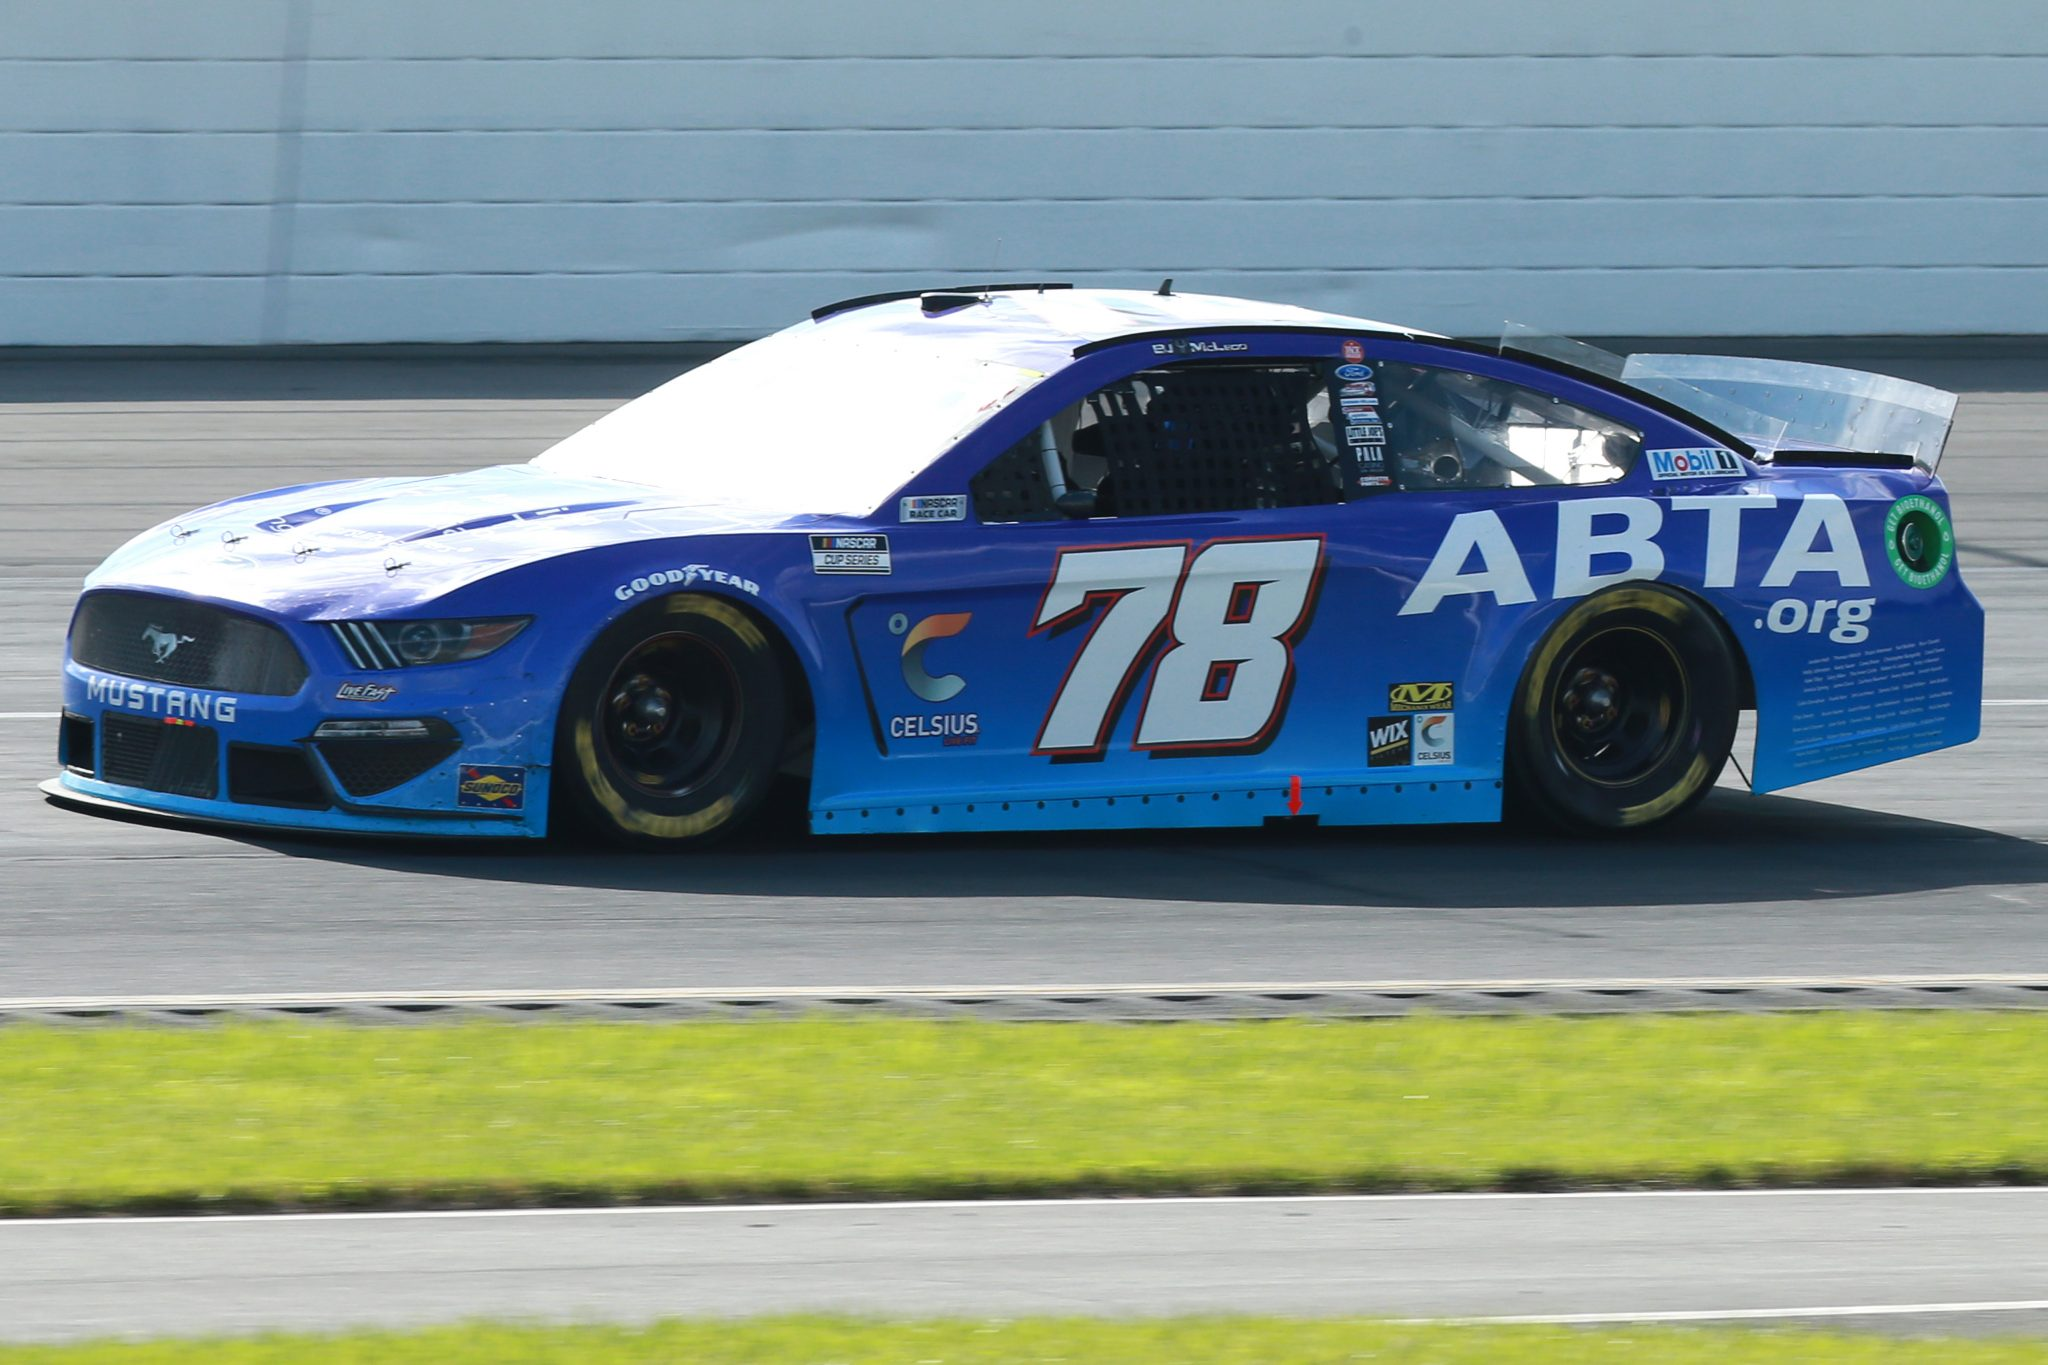 LONG POND, PENNSYLVANIA - JUNE 27: BJ McLeod, driver of the #78 American Brain Tumor Association Ford, drives during the NASCAR Cup Series Explore the Pocono Mountains 350 at Pocono Raceway on June 27, 2021 in Long Pond, Pennsylvania. (Photo by Sean Gardner/Getty Images) | Getty Images